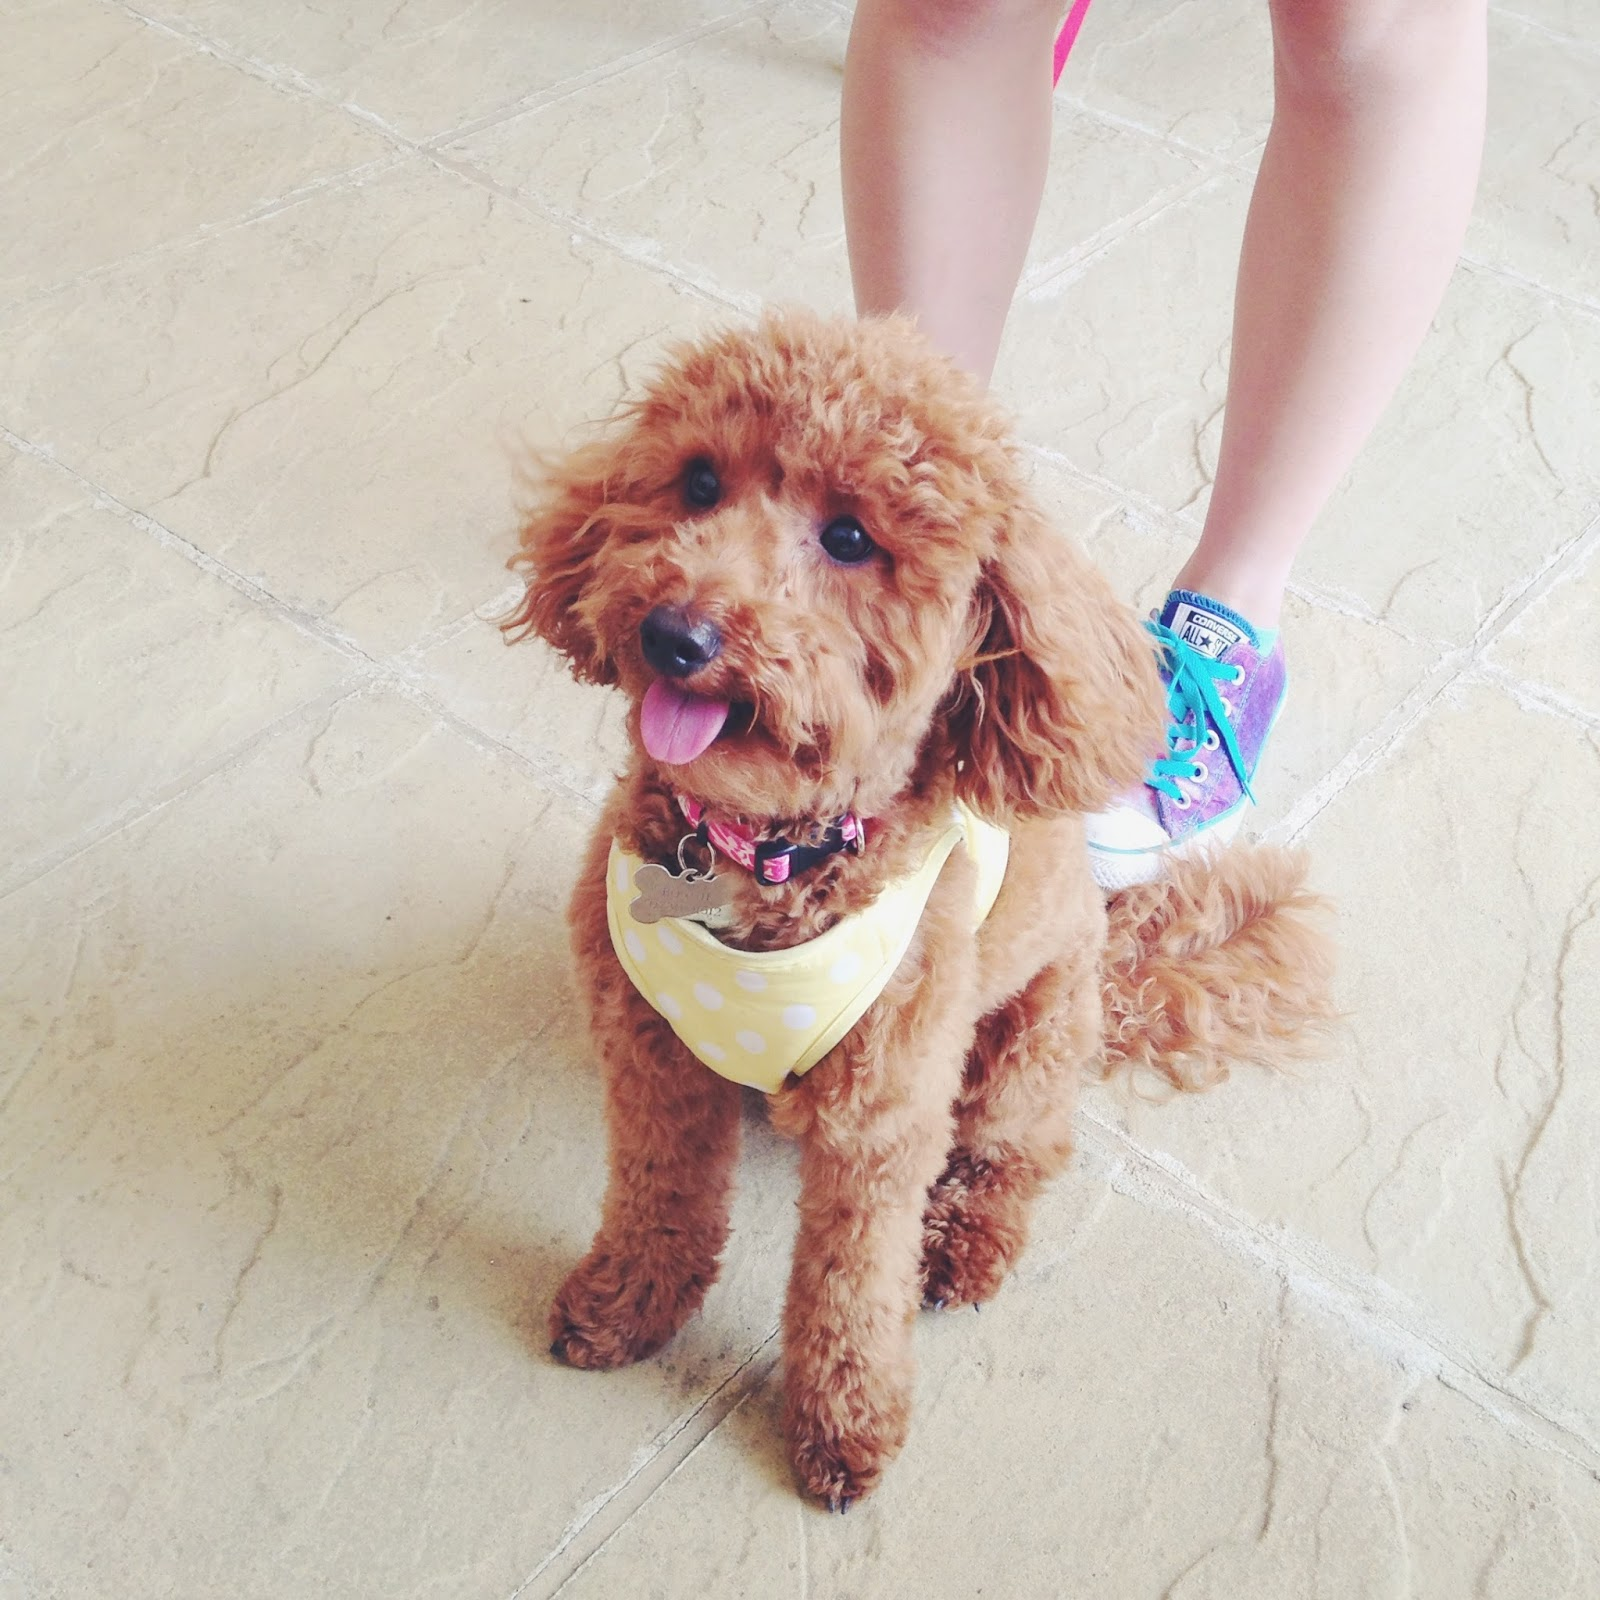 miniature poodle, toy poodle, miniature poodle haircut, poodle haircut